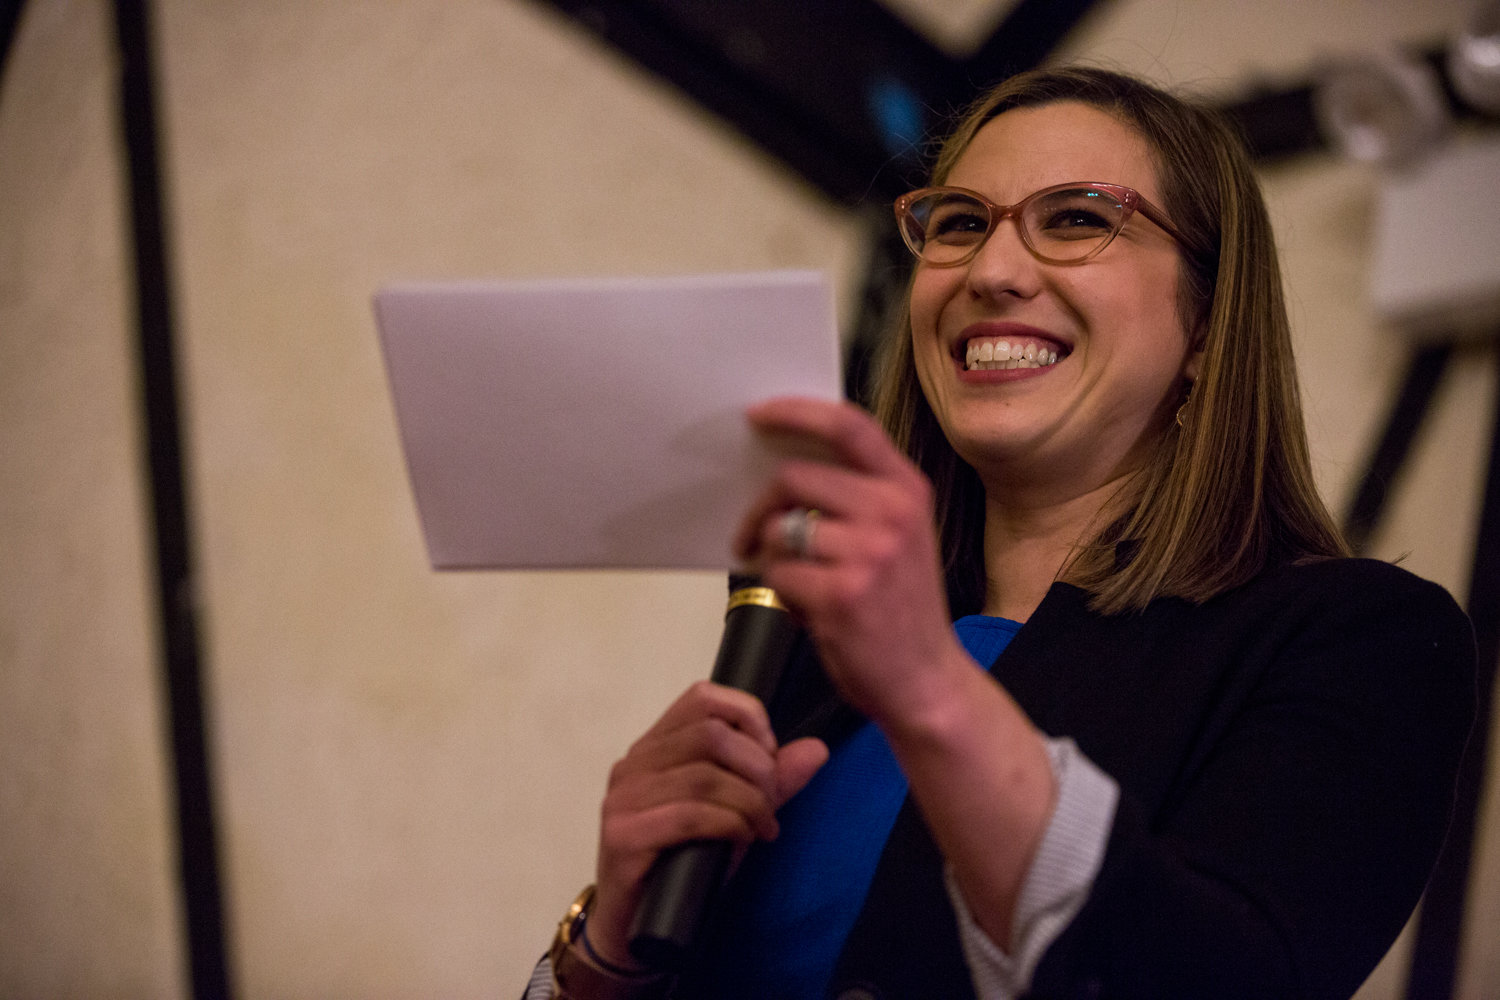 Morgan Evers makes her case for president of the Benjamin Franklin Reform Democratic Club during the club's annual meeting Jan. 29. She challenged incumbent Michael Heller, but ultimately lost 243-153.